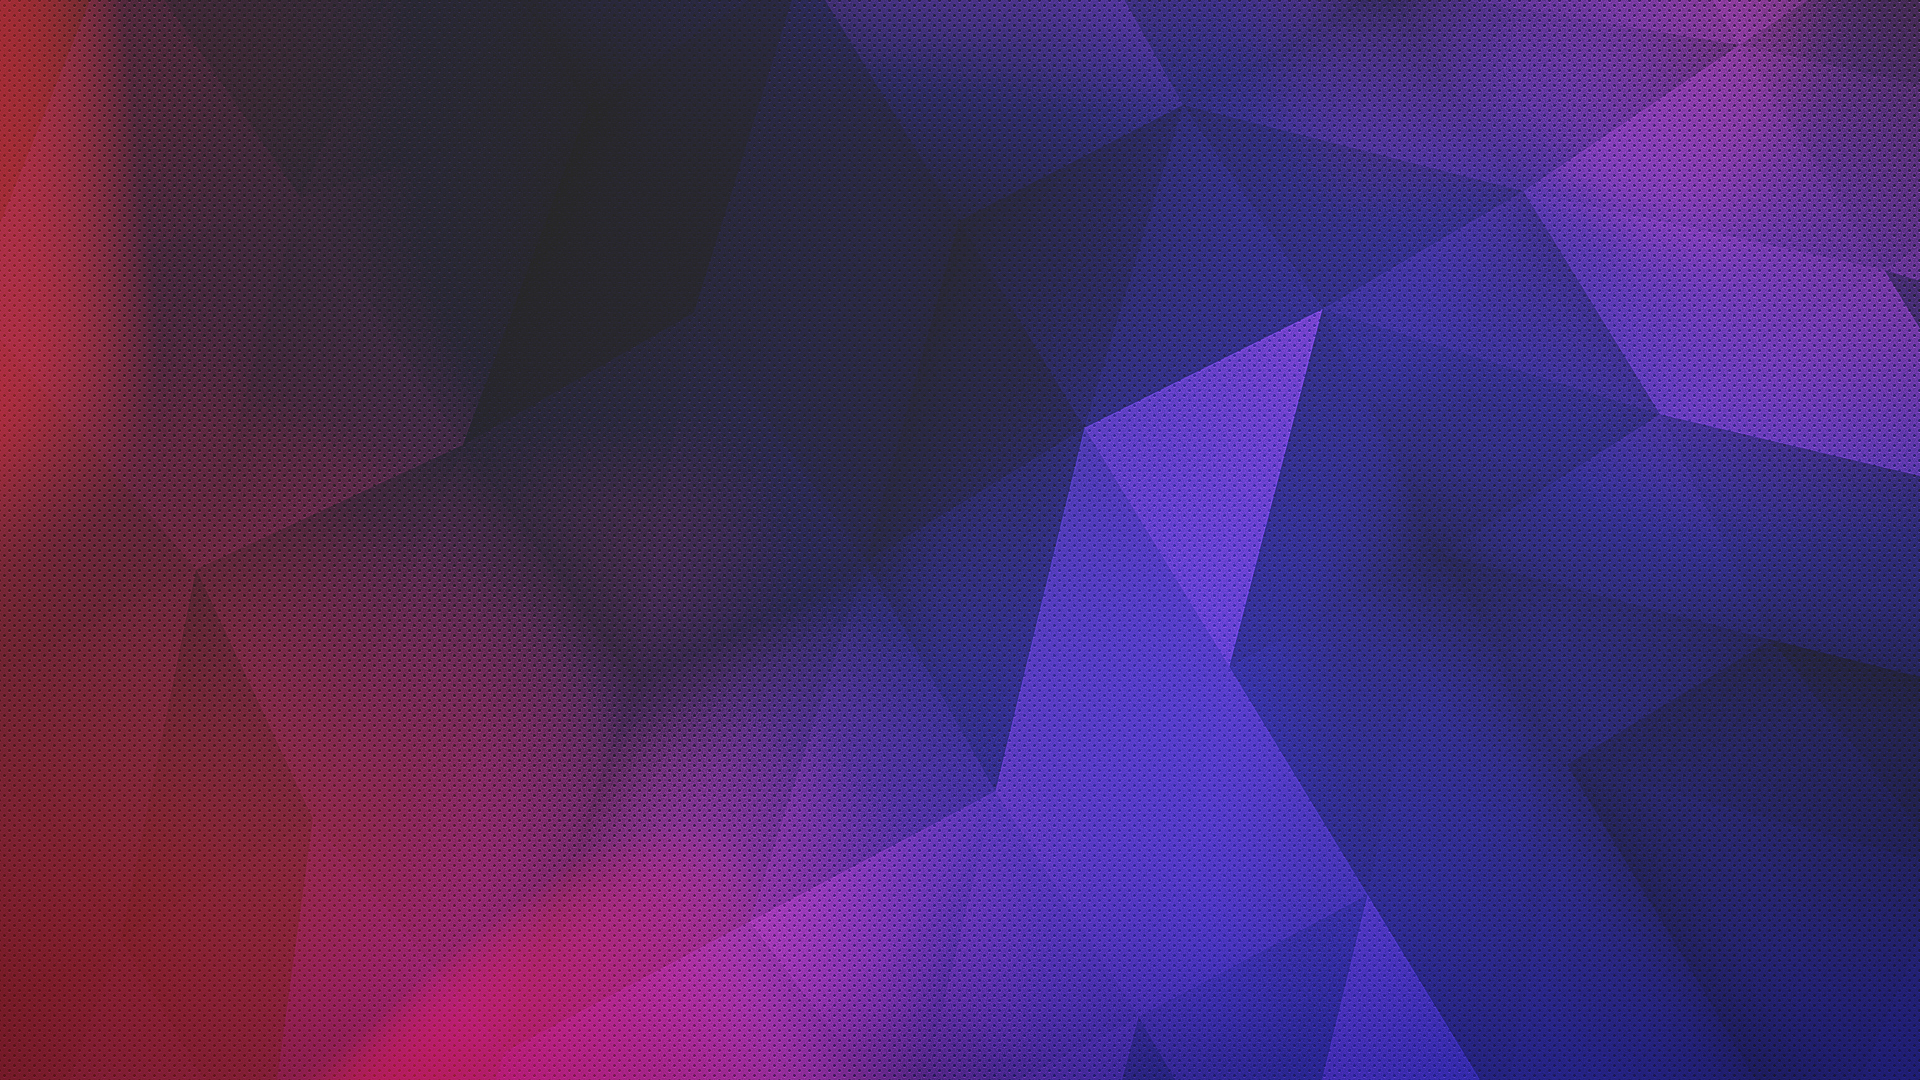 abstract-geometric-gradient-4k-full-hd-iphone-android-wallpaper-wpc5801933